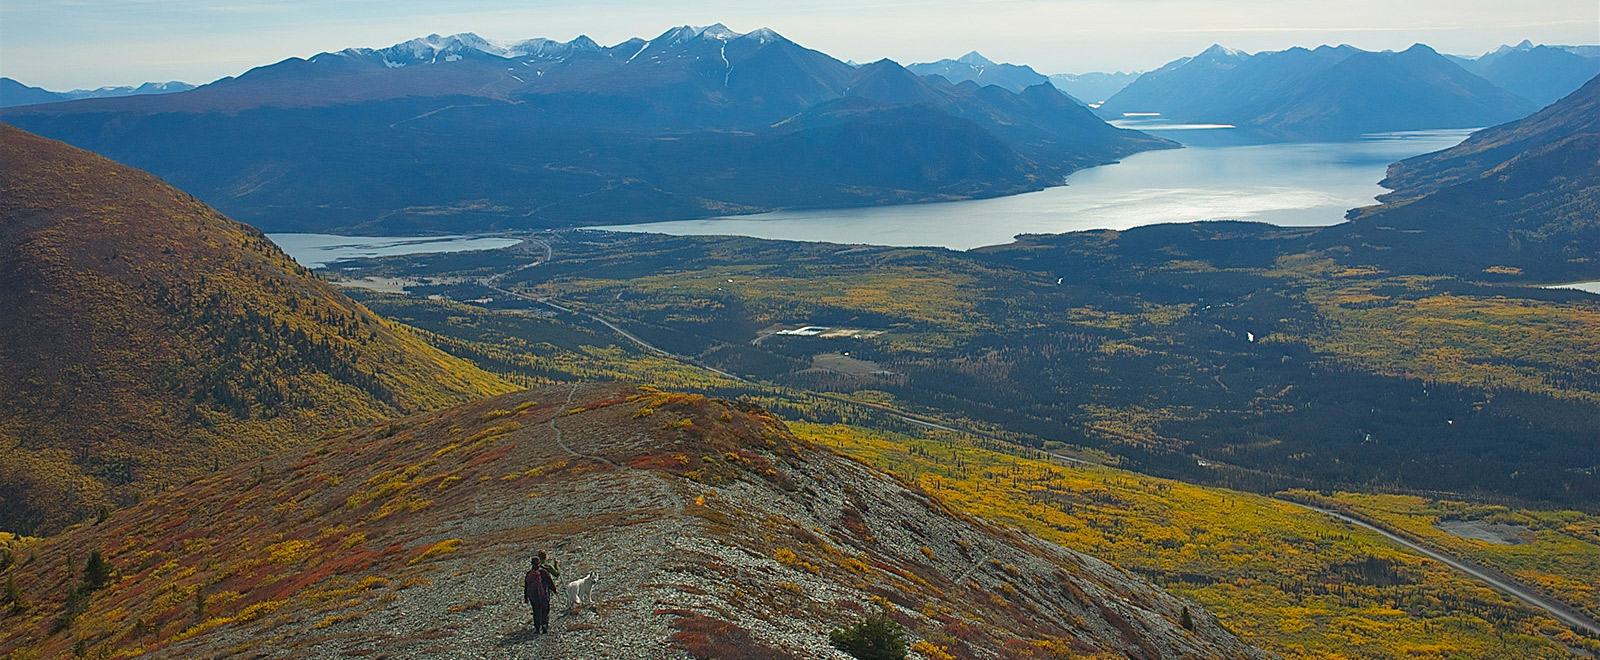 Yukon Landscape hiking